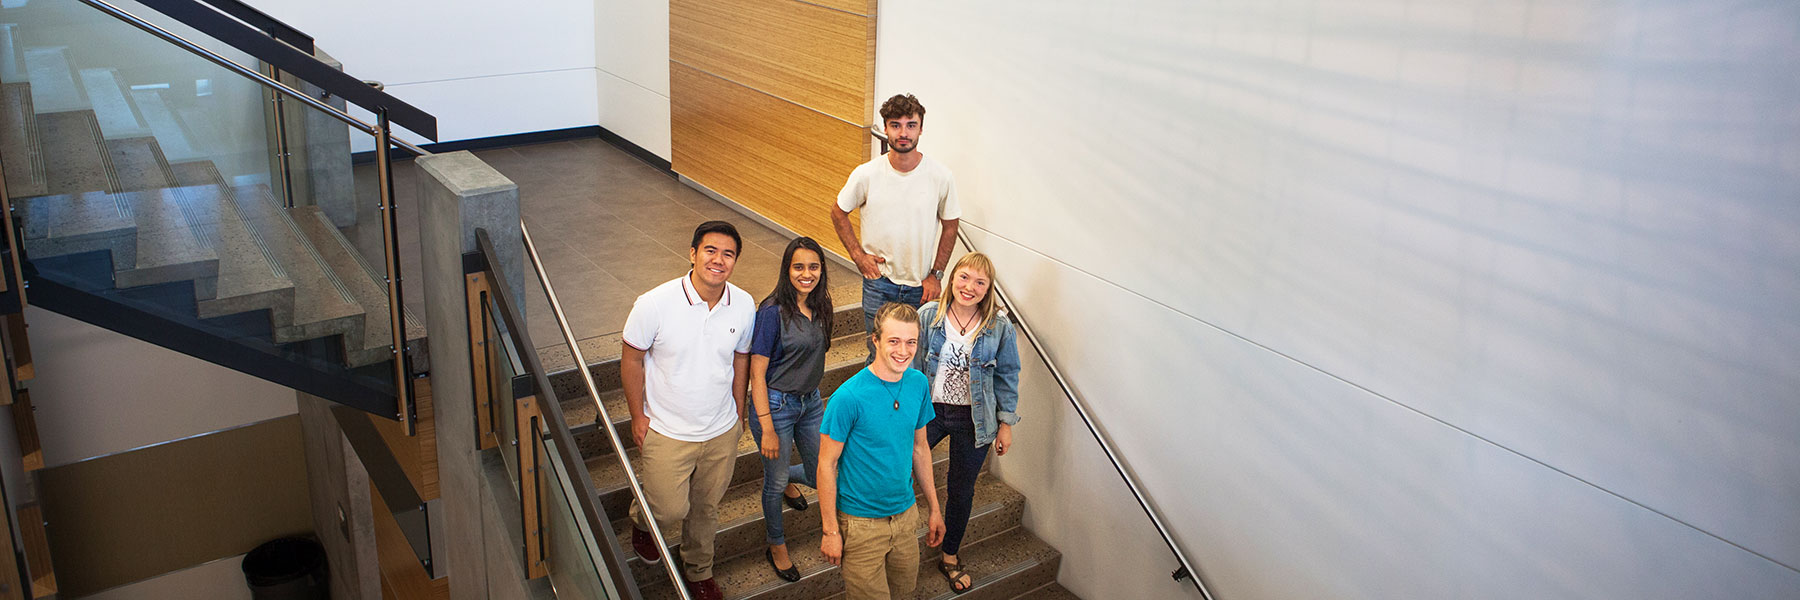 Students smiling on the stairs in the Gateway Building.